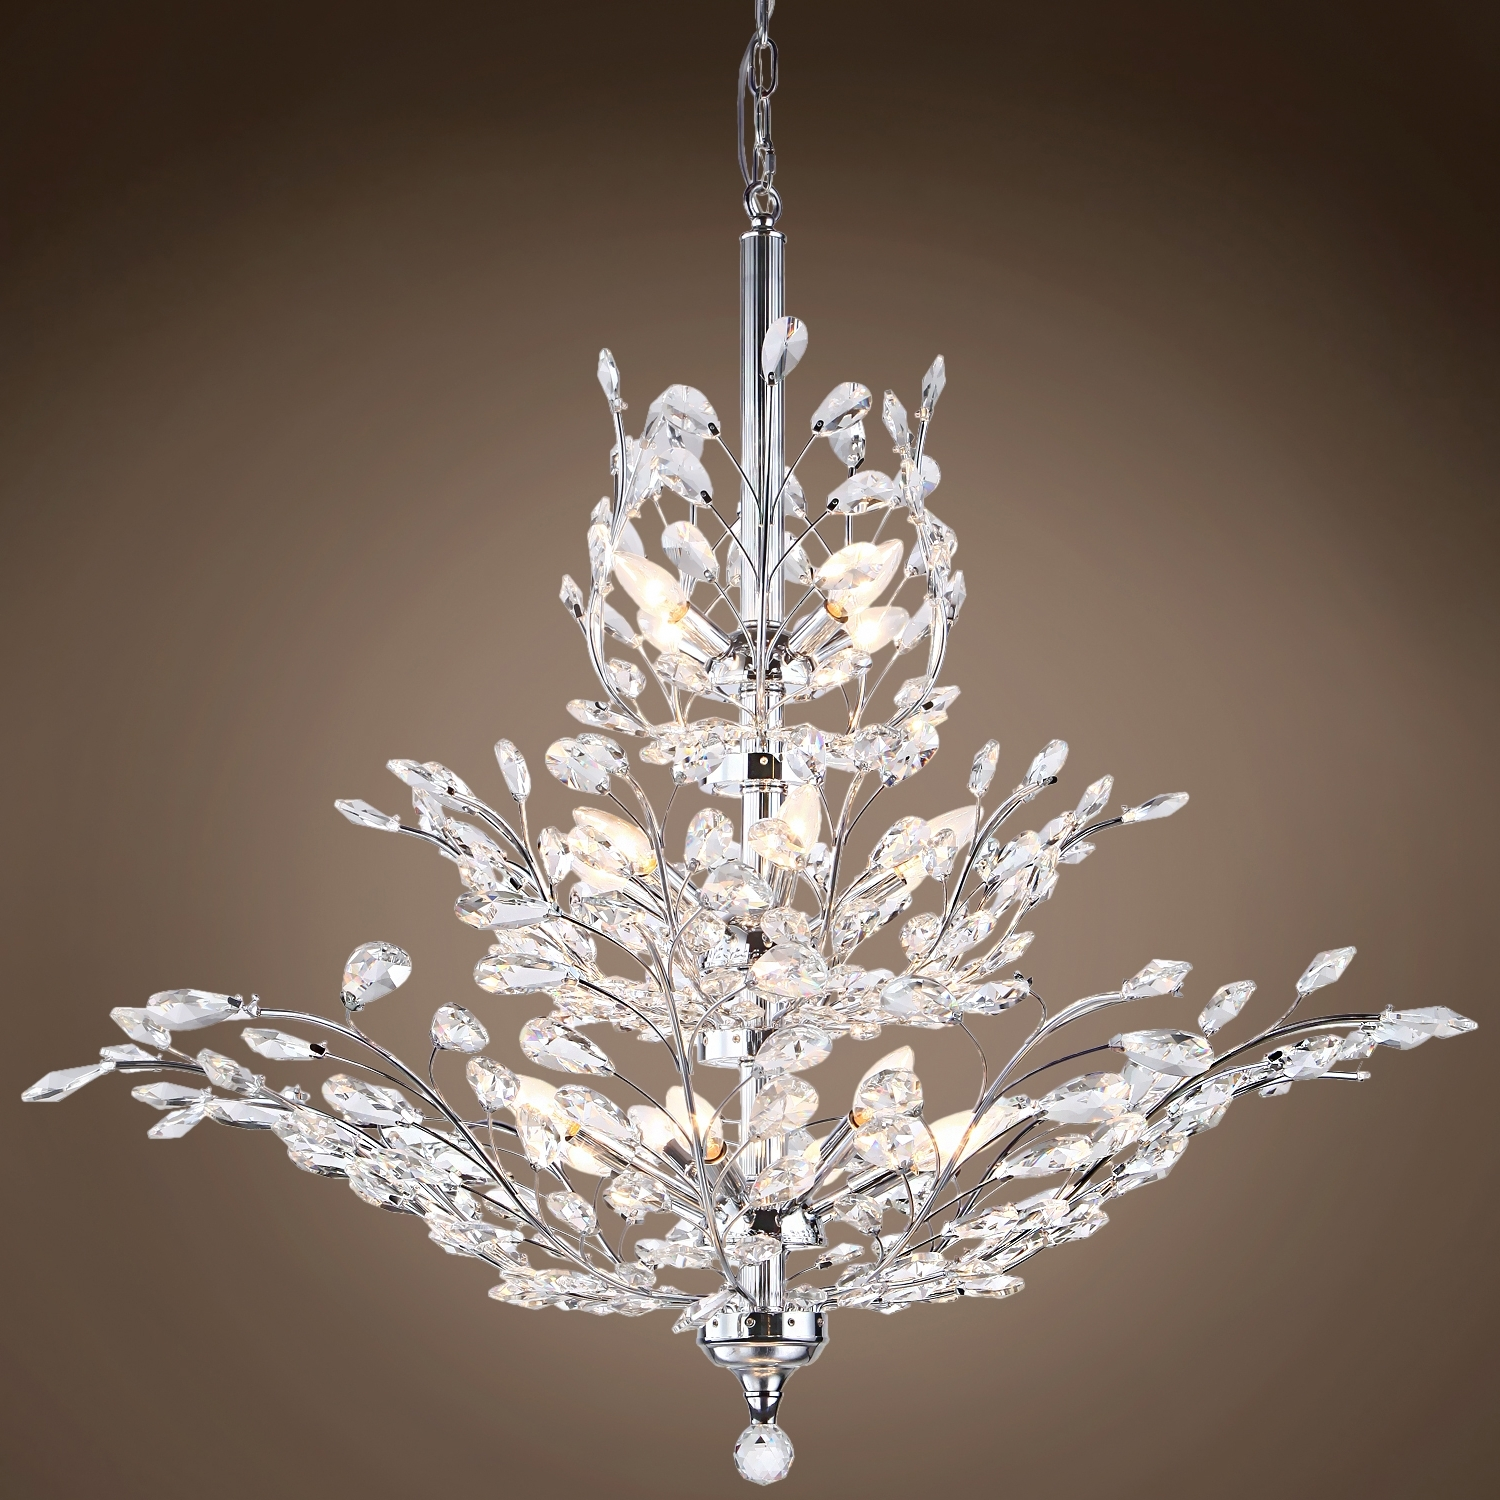 Most Recent Crystal Branch Chandelier With Regard To Joshua Marshal 700109 Branch Of Light 13 Light Chrome Chandelier (View 3 of 20)